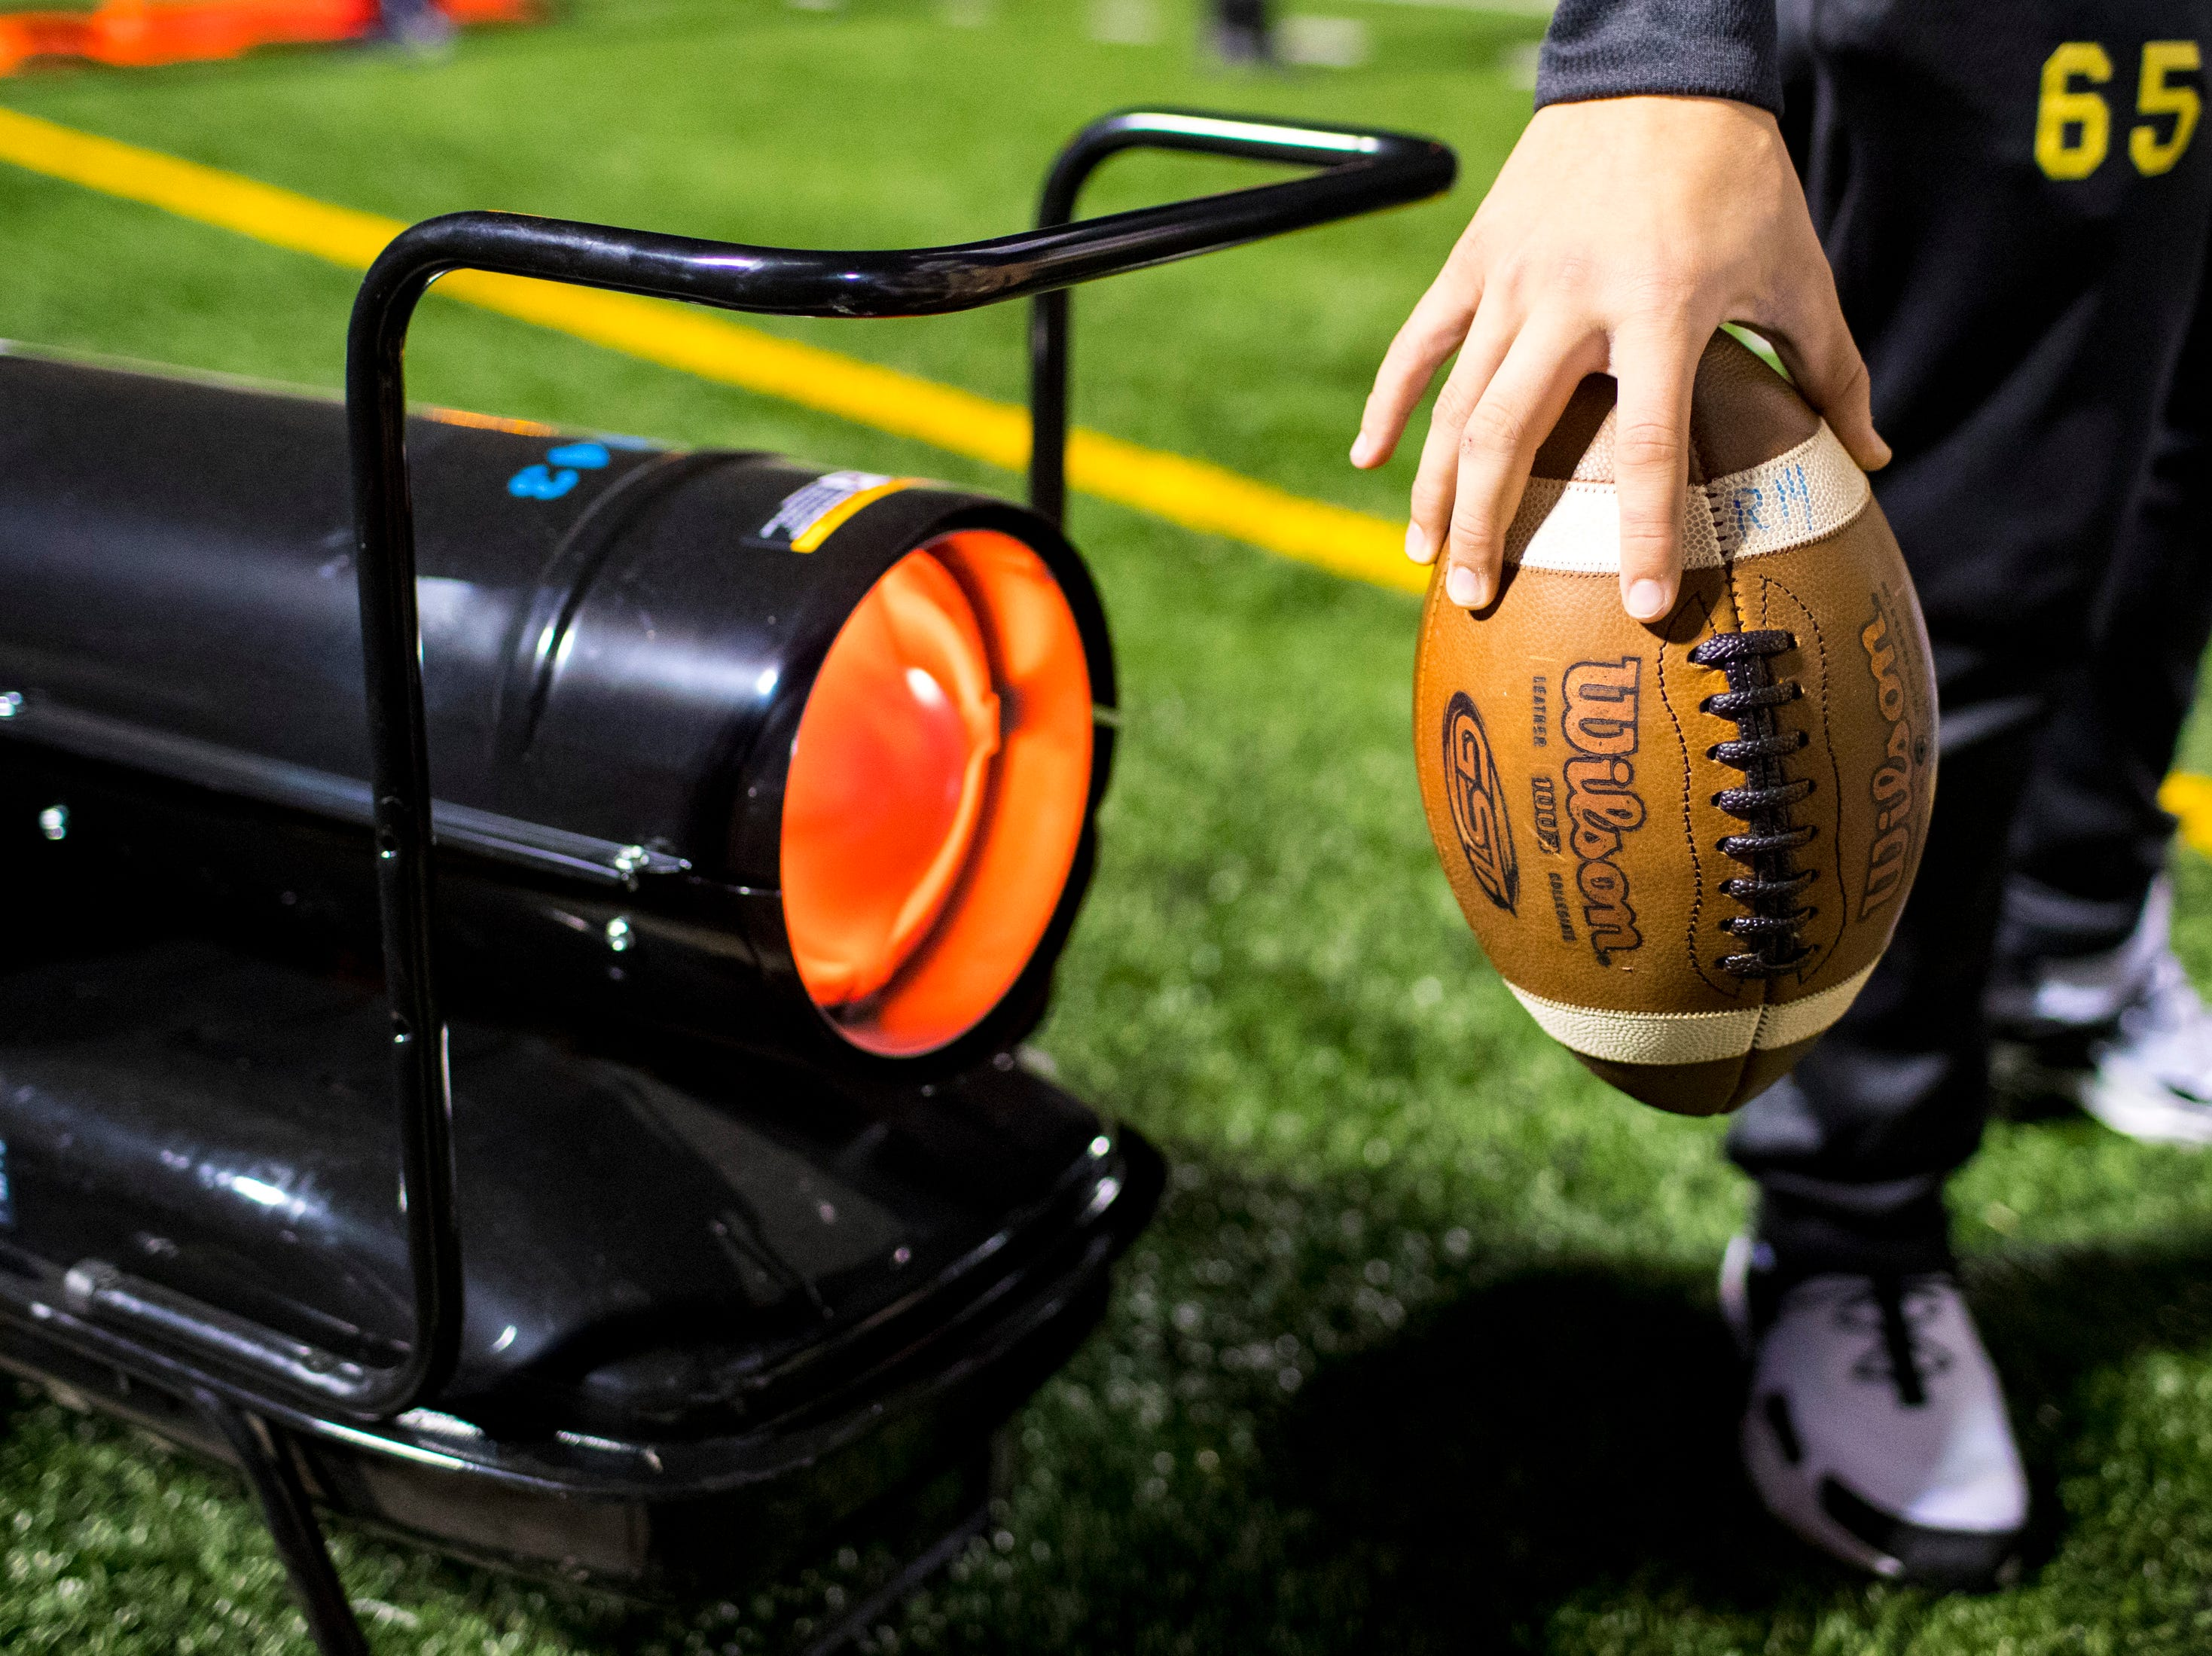 A football is warmed by a portable heater during Brentwood's game against Ravenwood at Brentwood High School in Brentwood on Friday, Nov. 16, 2018.